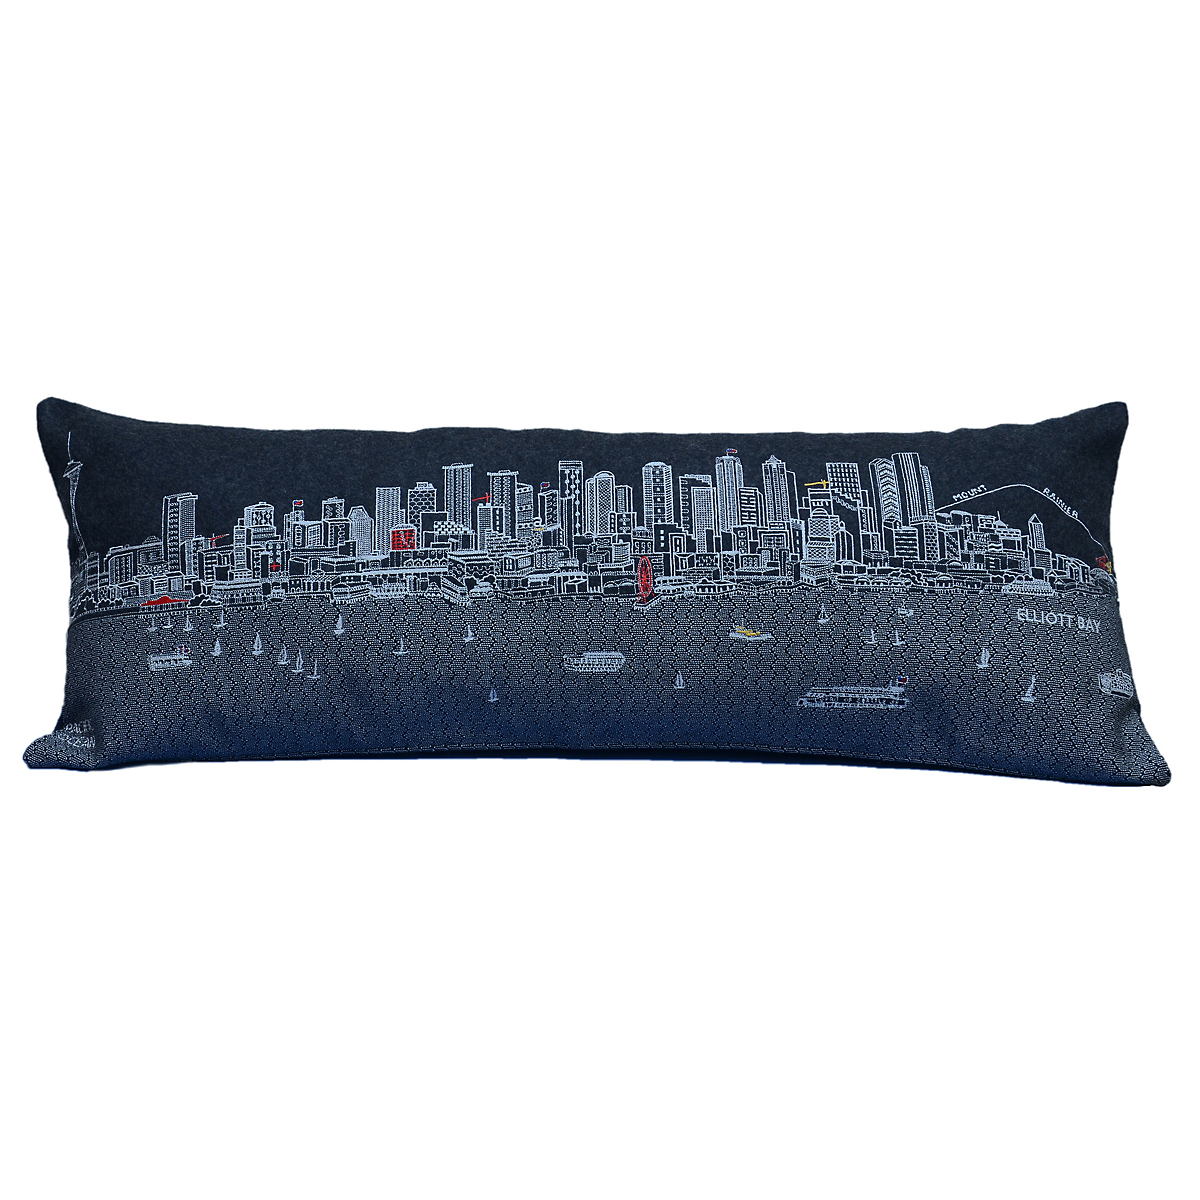 City Skyline Pillow, Seattle